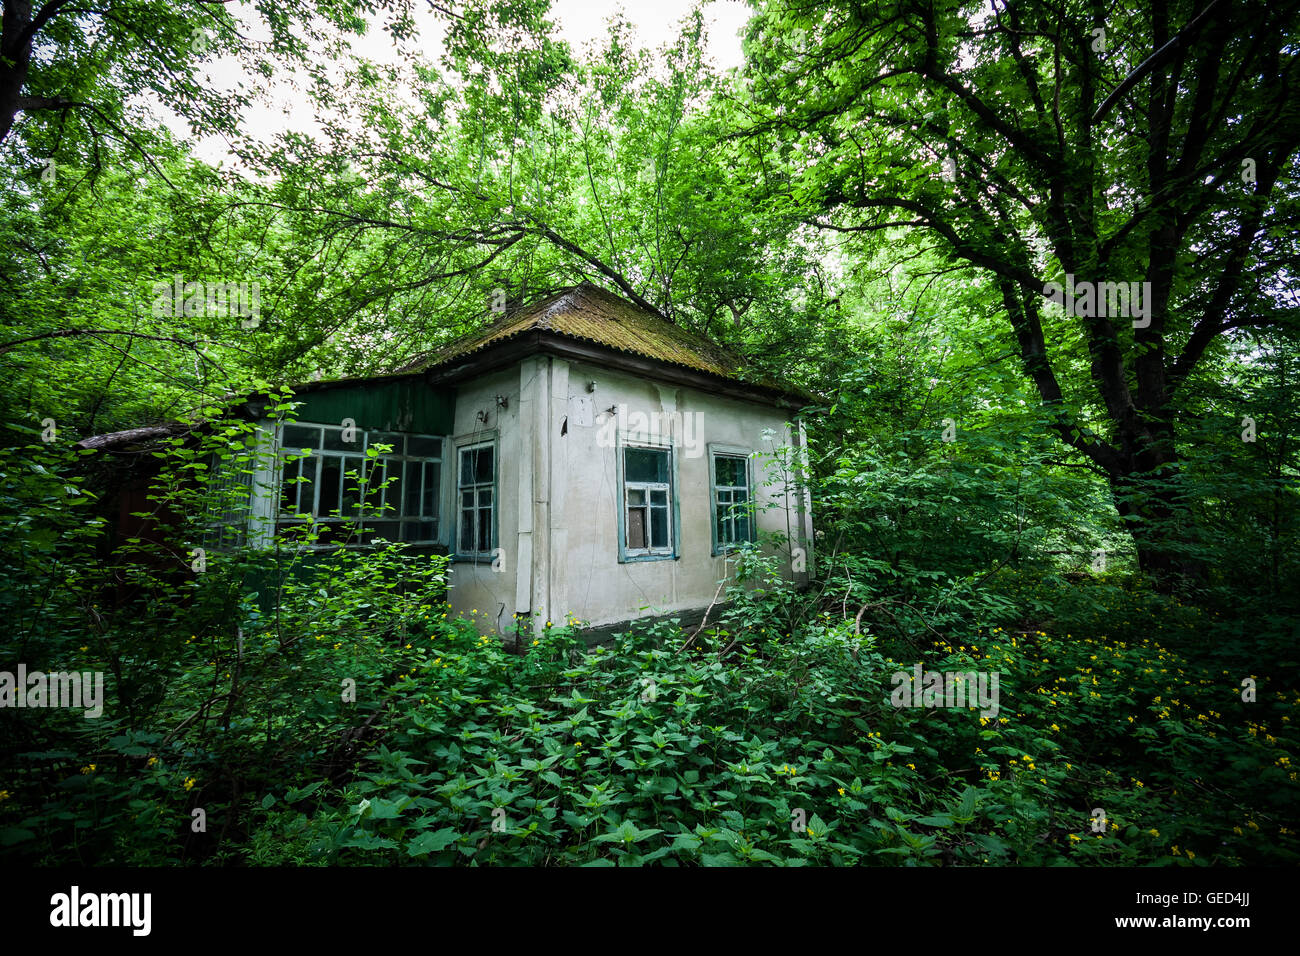 An abandoned house slowly decays and disappears into the foliage inside the Chernobyl exclusion zone, Ukraine. - Stock Image